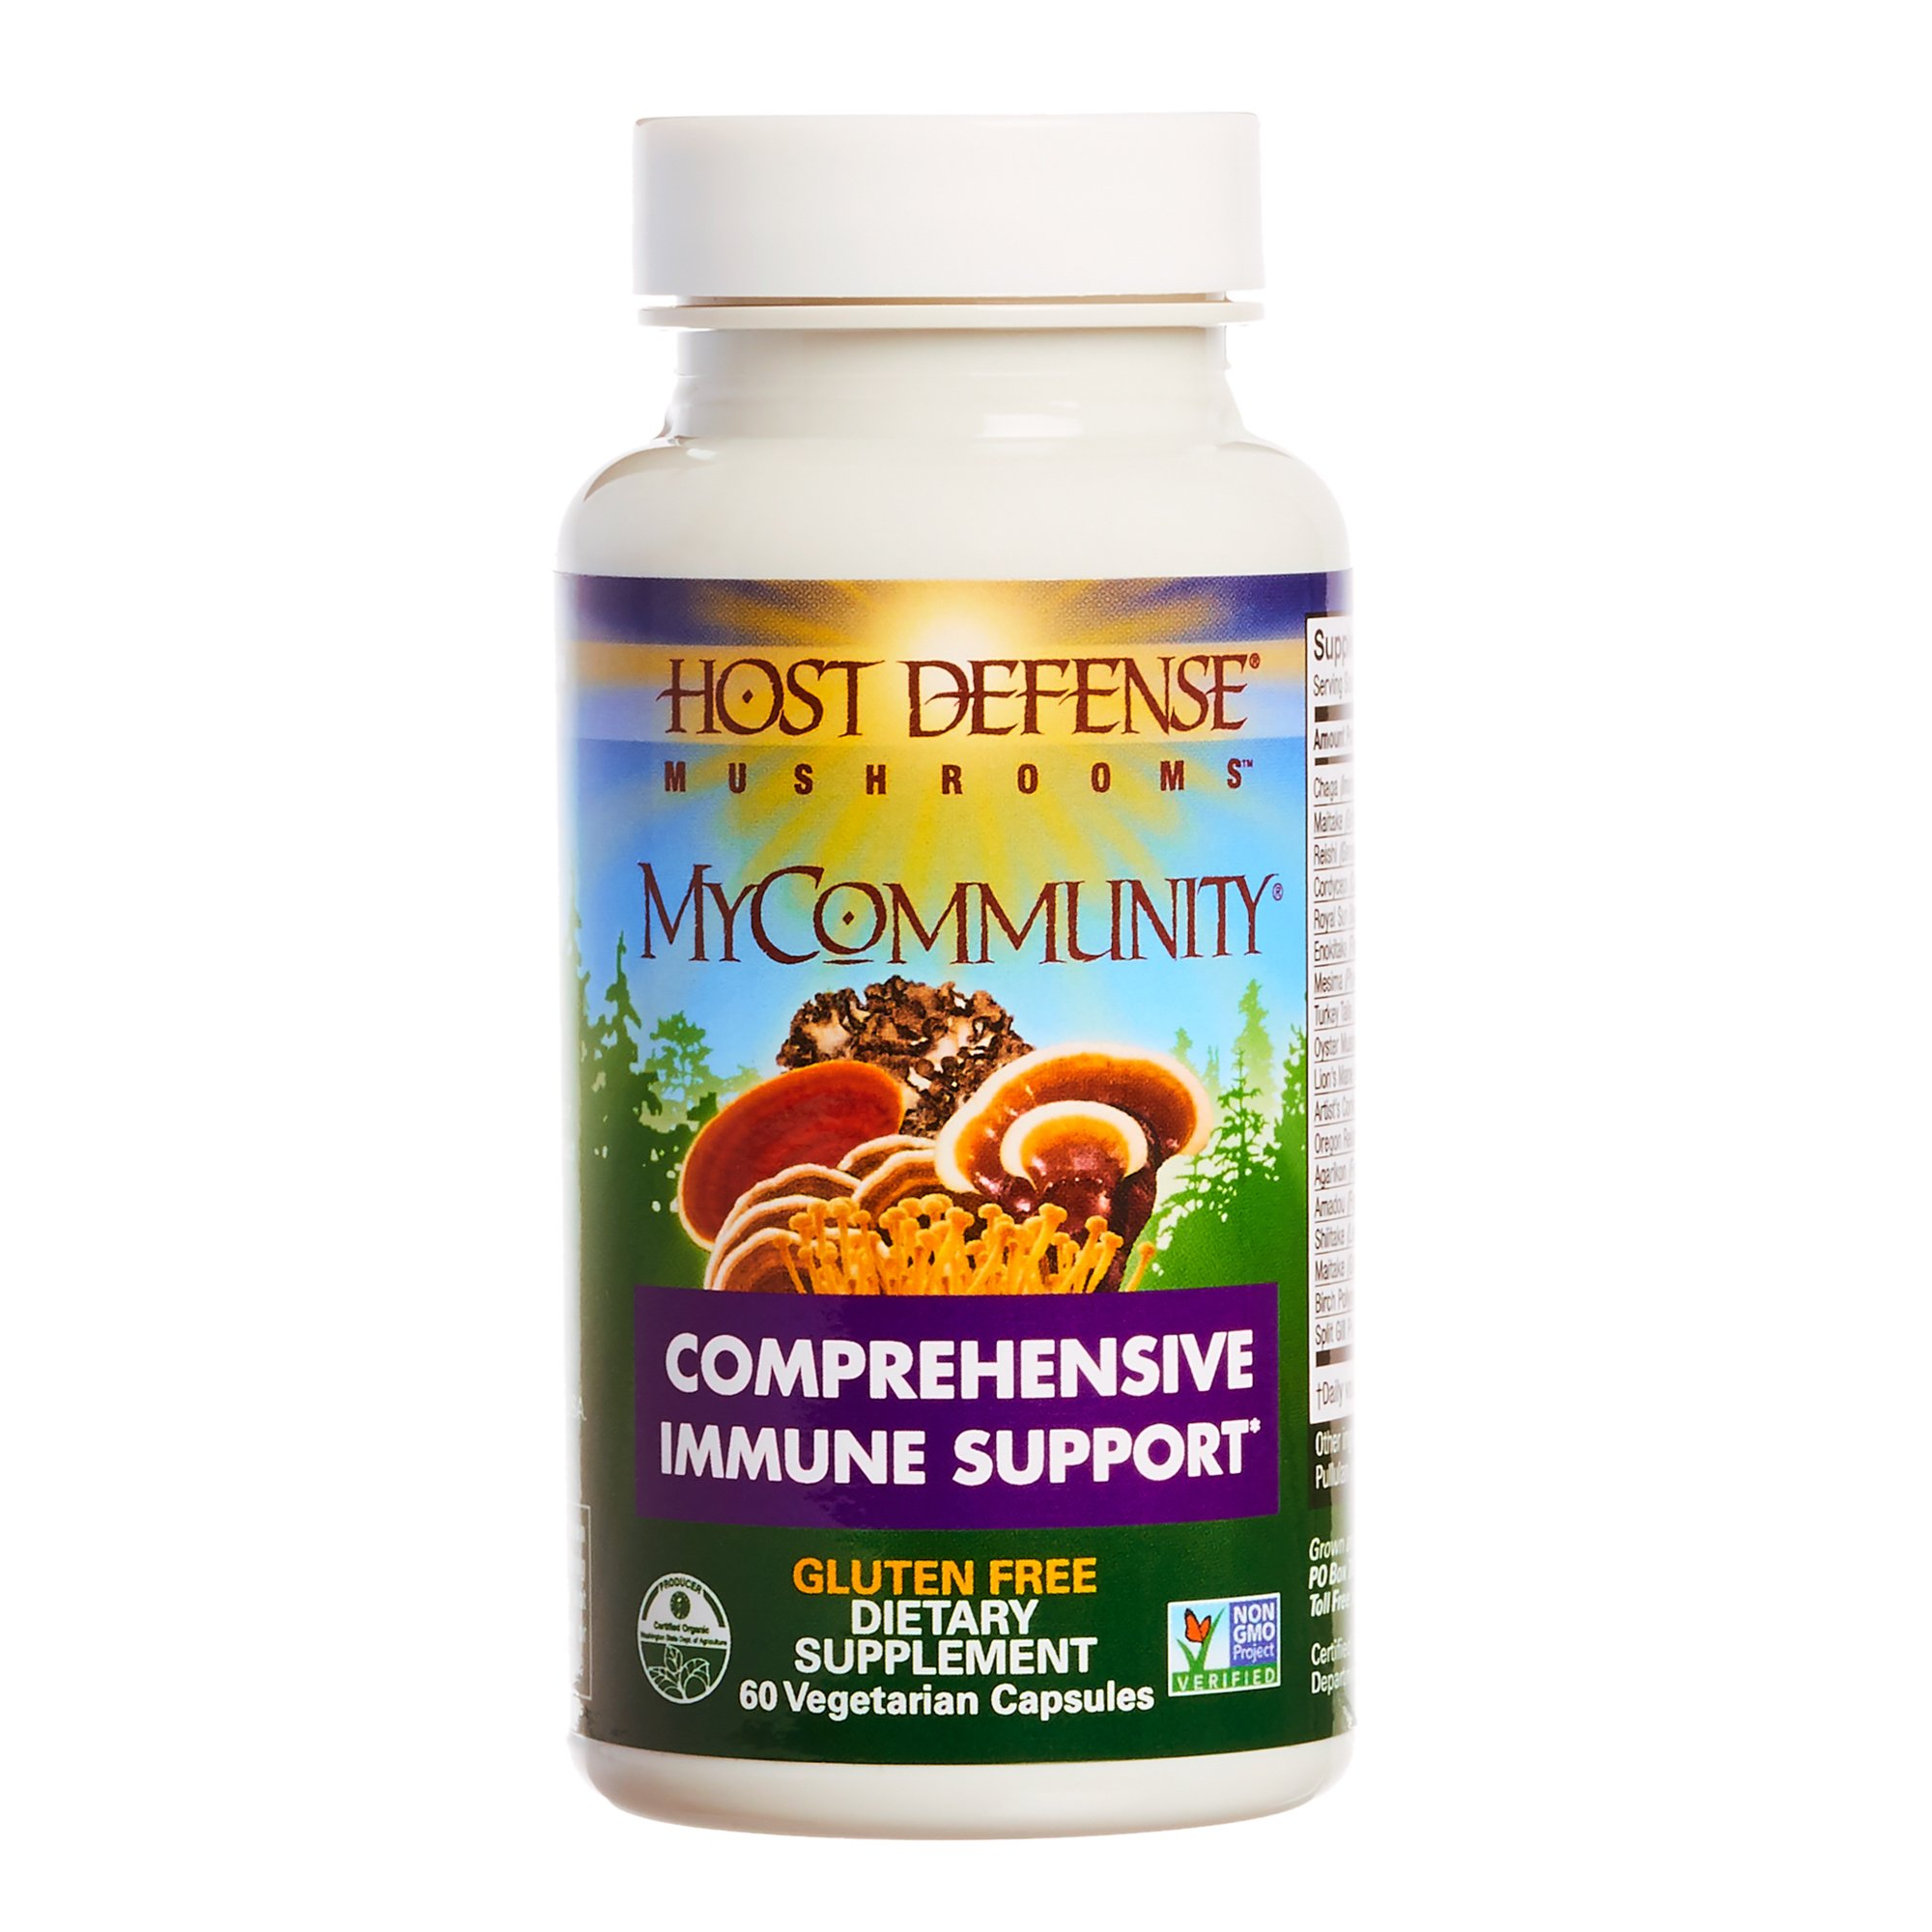 Host Defense - MyCommunity Multi Mushroom Capsules, Comprehensive Support for a Robust and Resilient Immune System with Lion's Mane, Turkey Tails, and Reishi, Non-GMO, Vegan, Organic, 60 Count